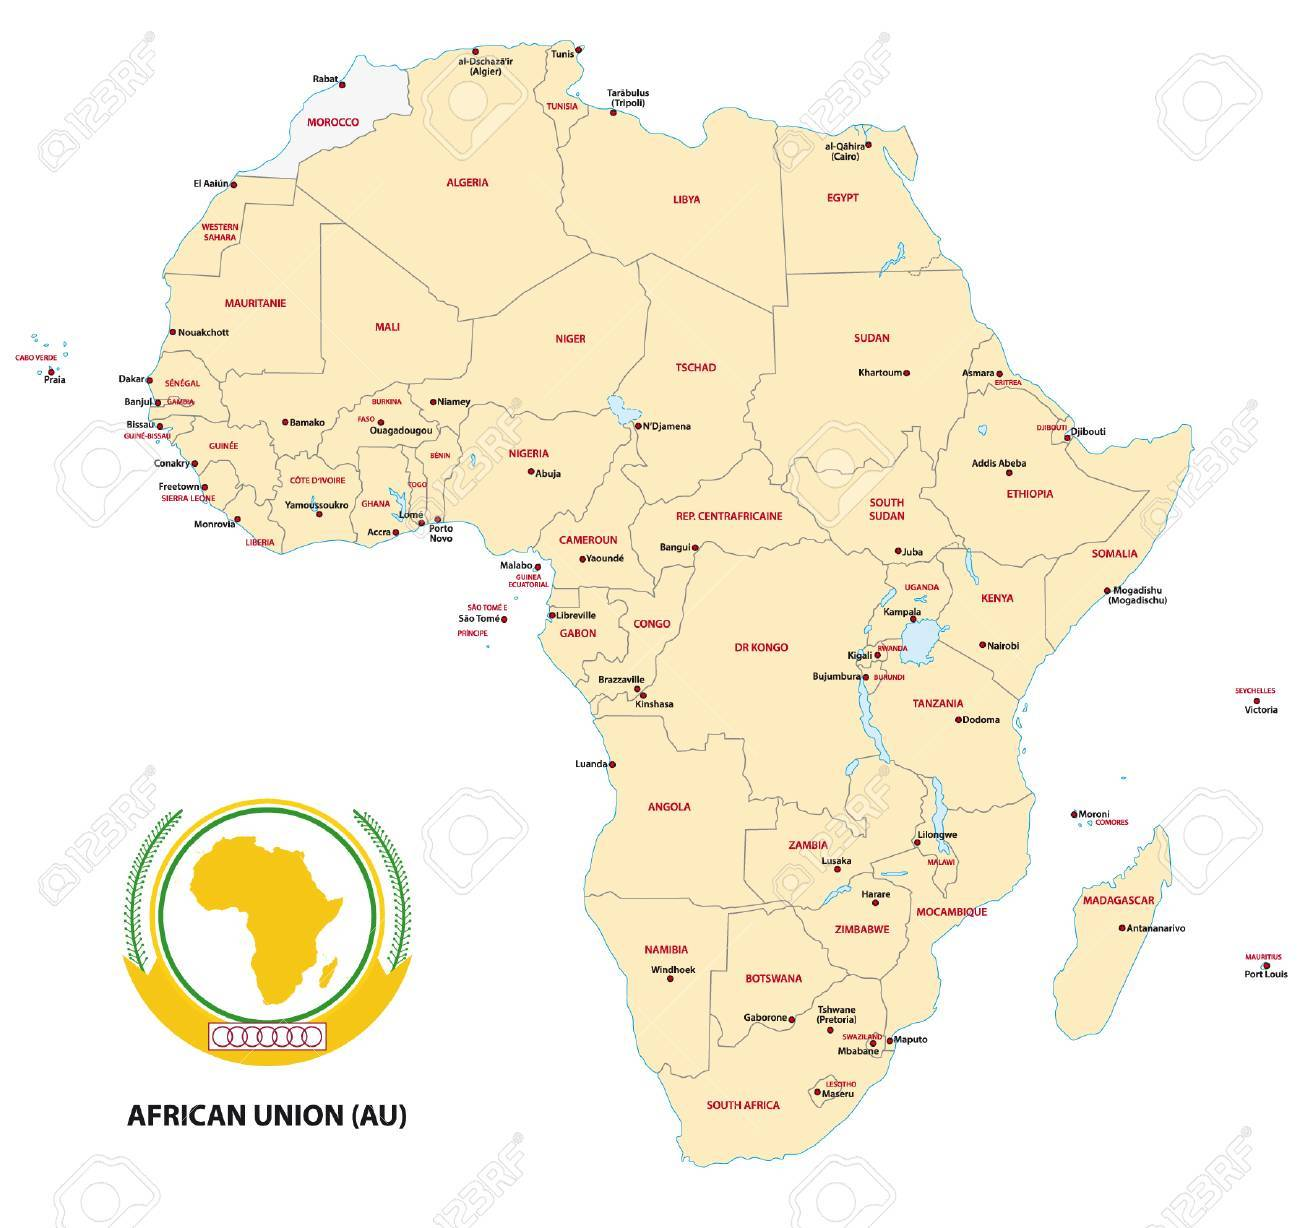 Africa (AU) Map Royalty Free Cliparts, Vectors, And Stock